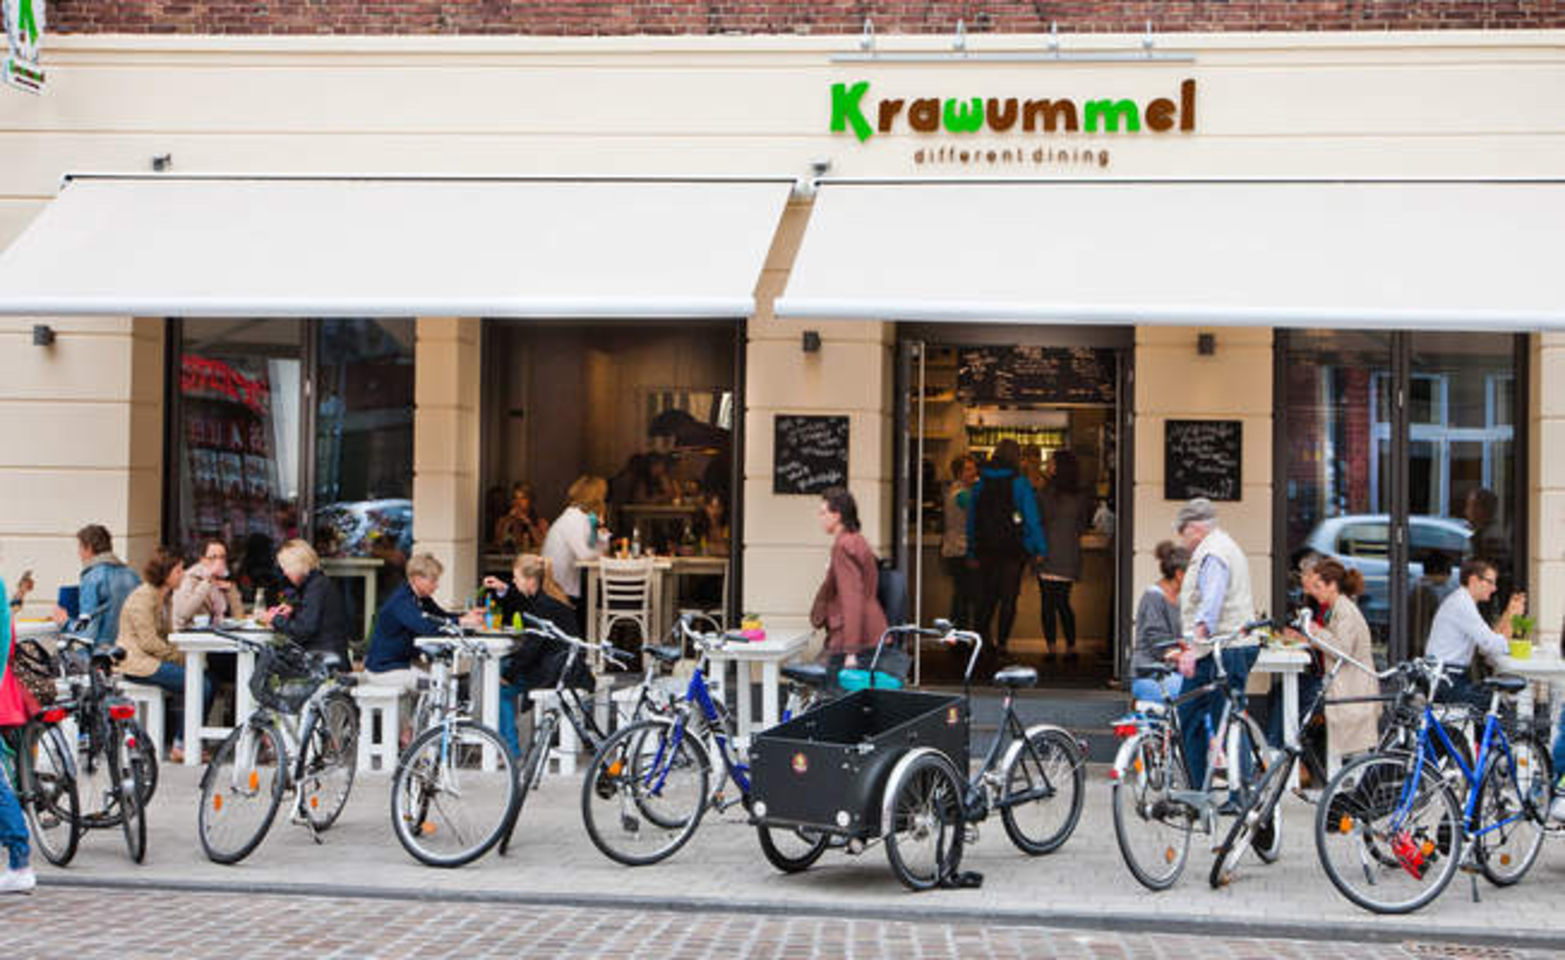 A photo of Krawummel